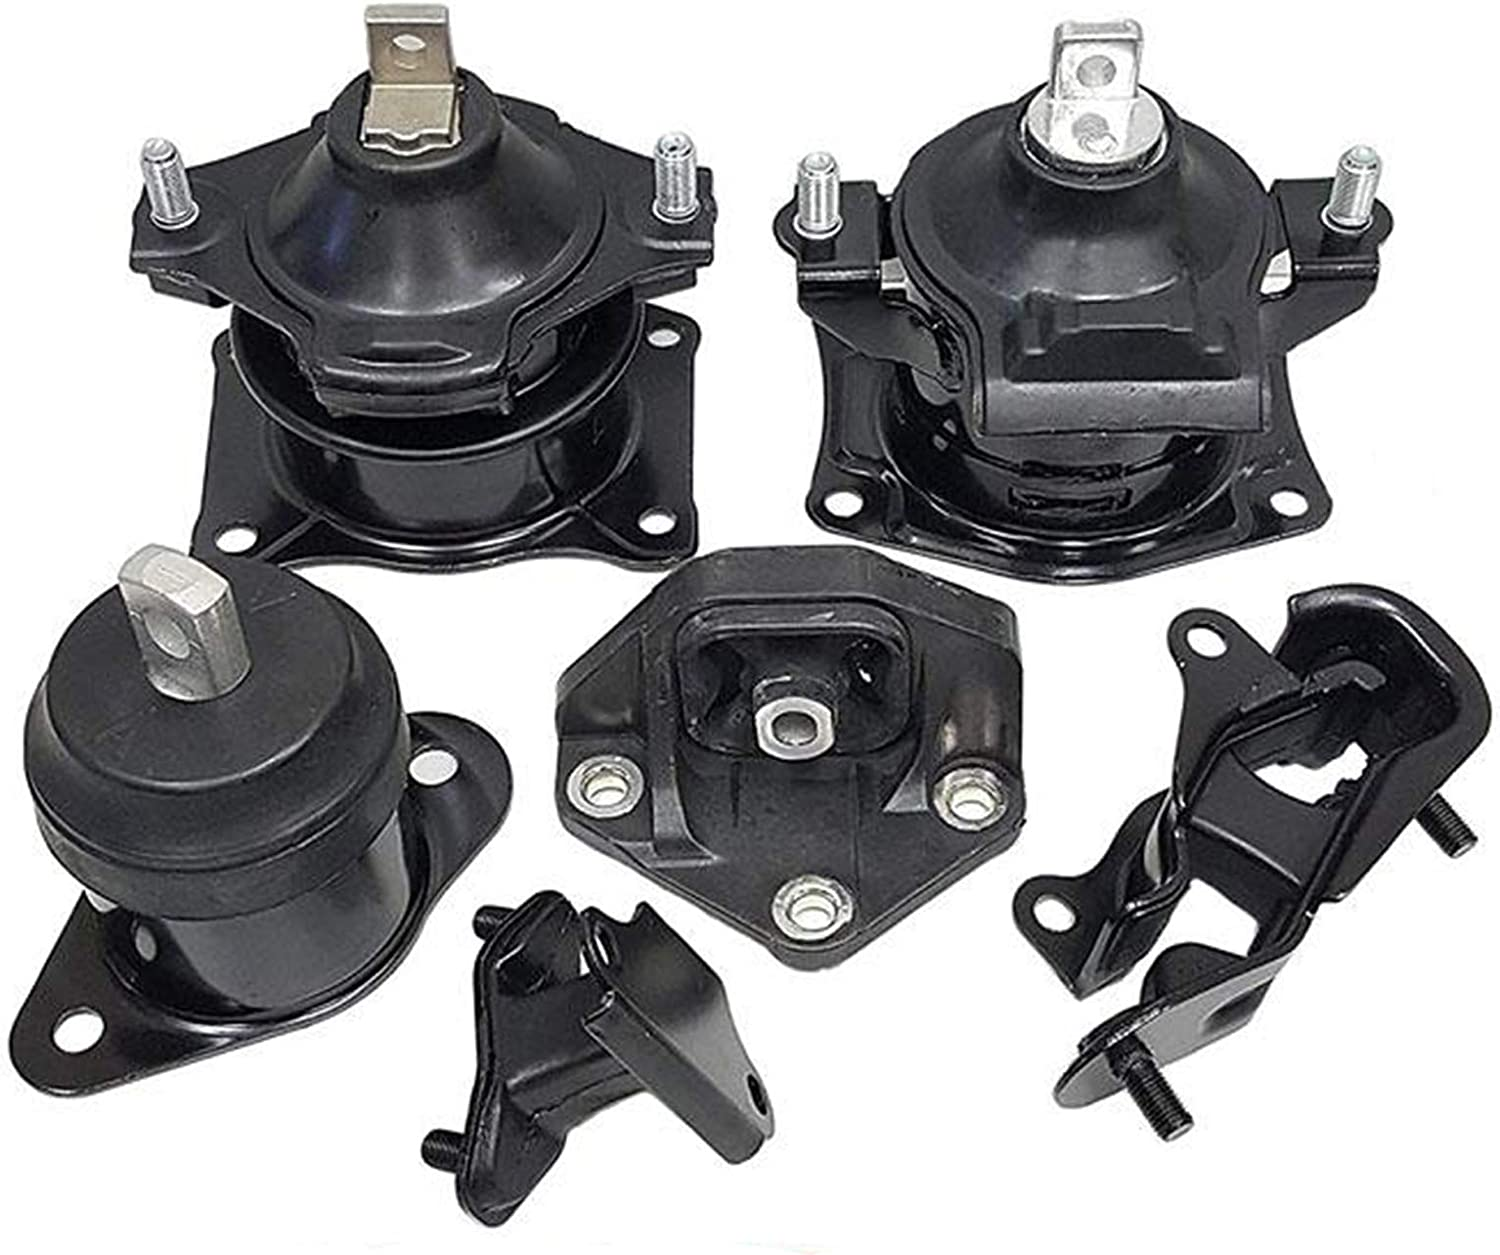 ECCPP Engine Motor and Trans Mounts A4526 A4517 A4527 A4544 A4524 Set of 5 Fit For Acura TL 2004 2005 2006 3.2L